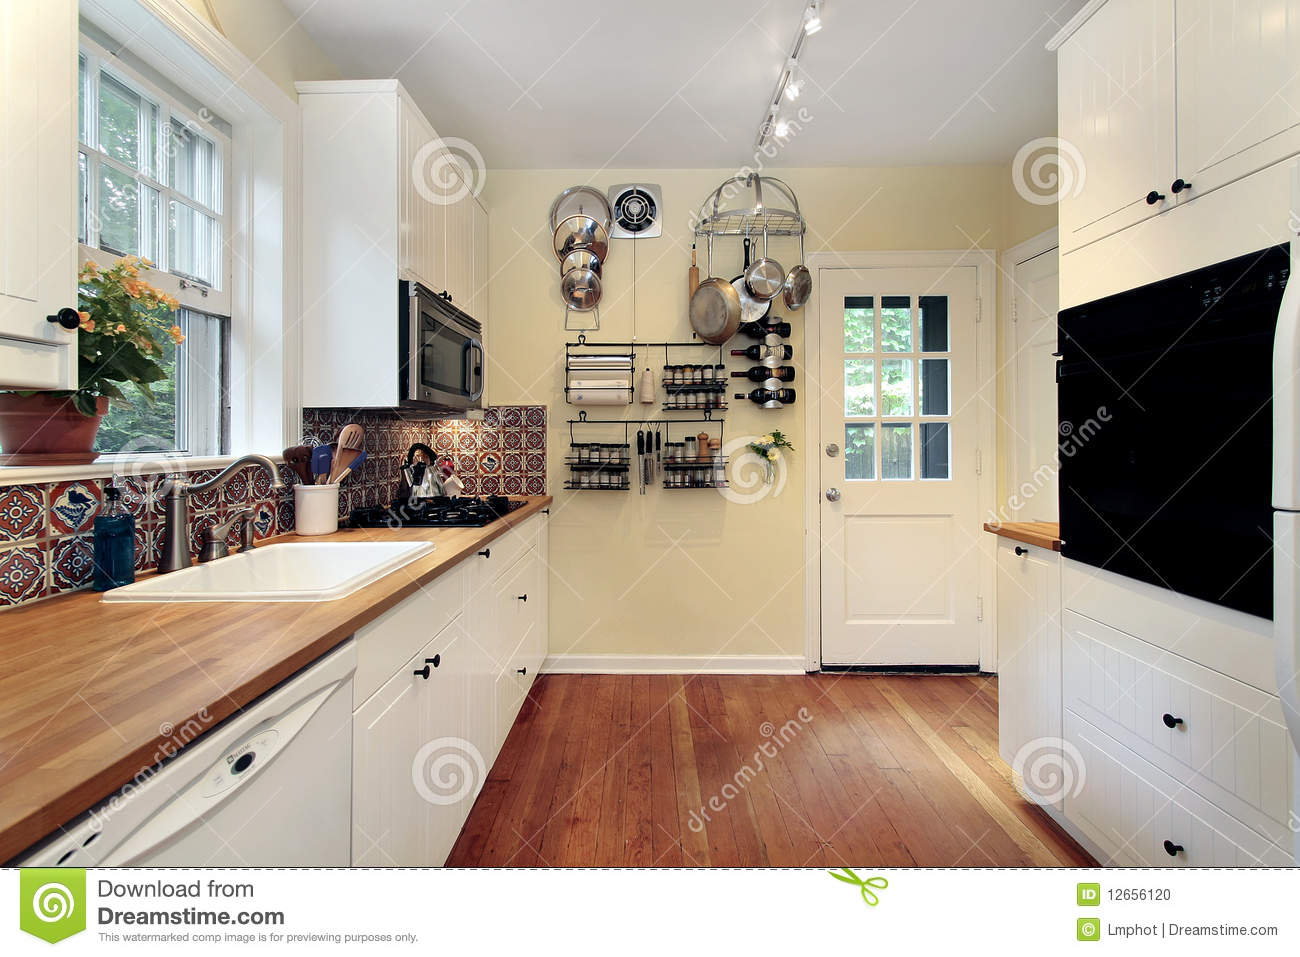 Kitchen Cabinet Download